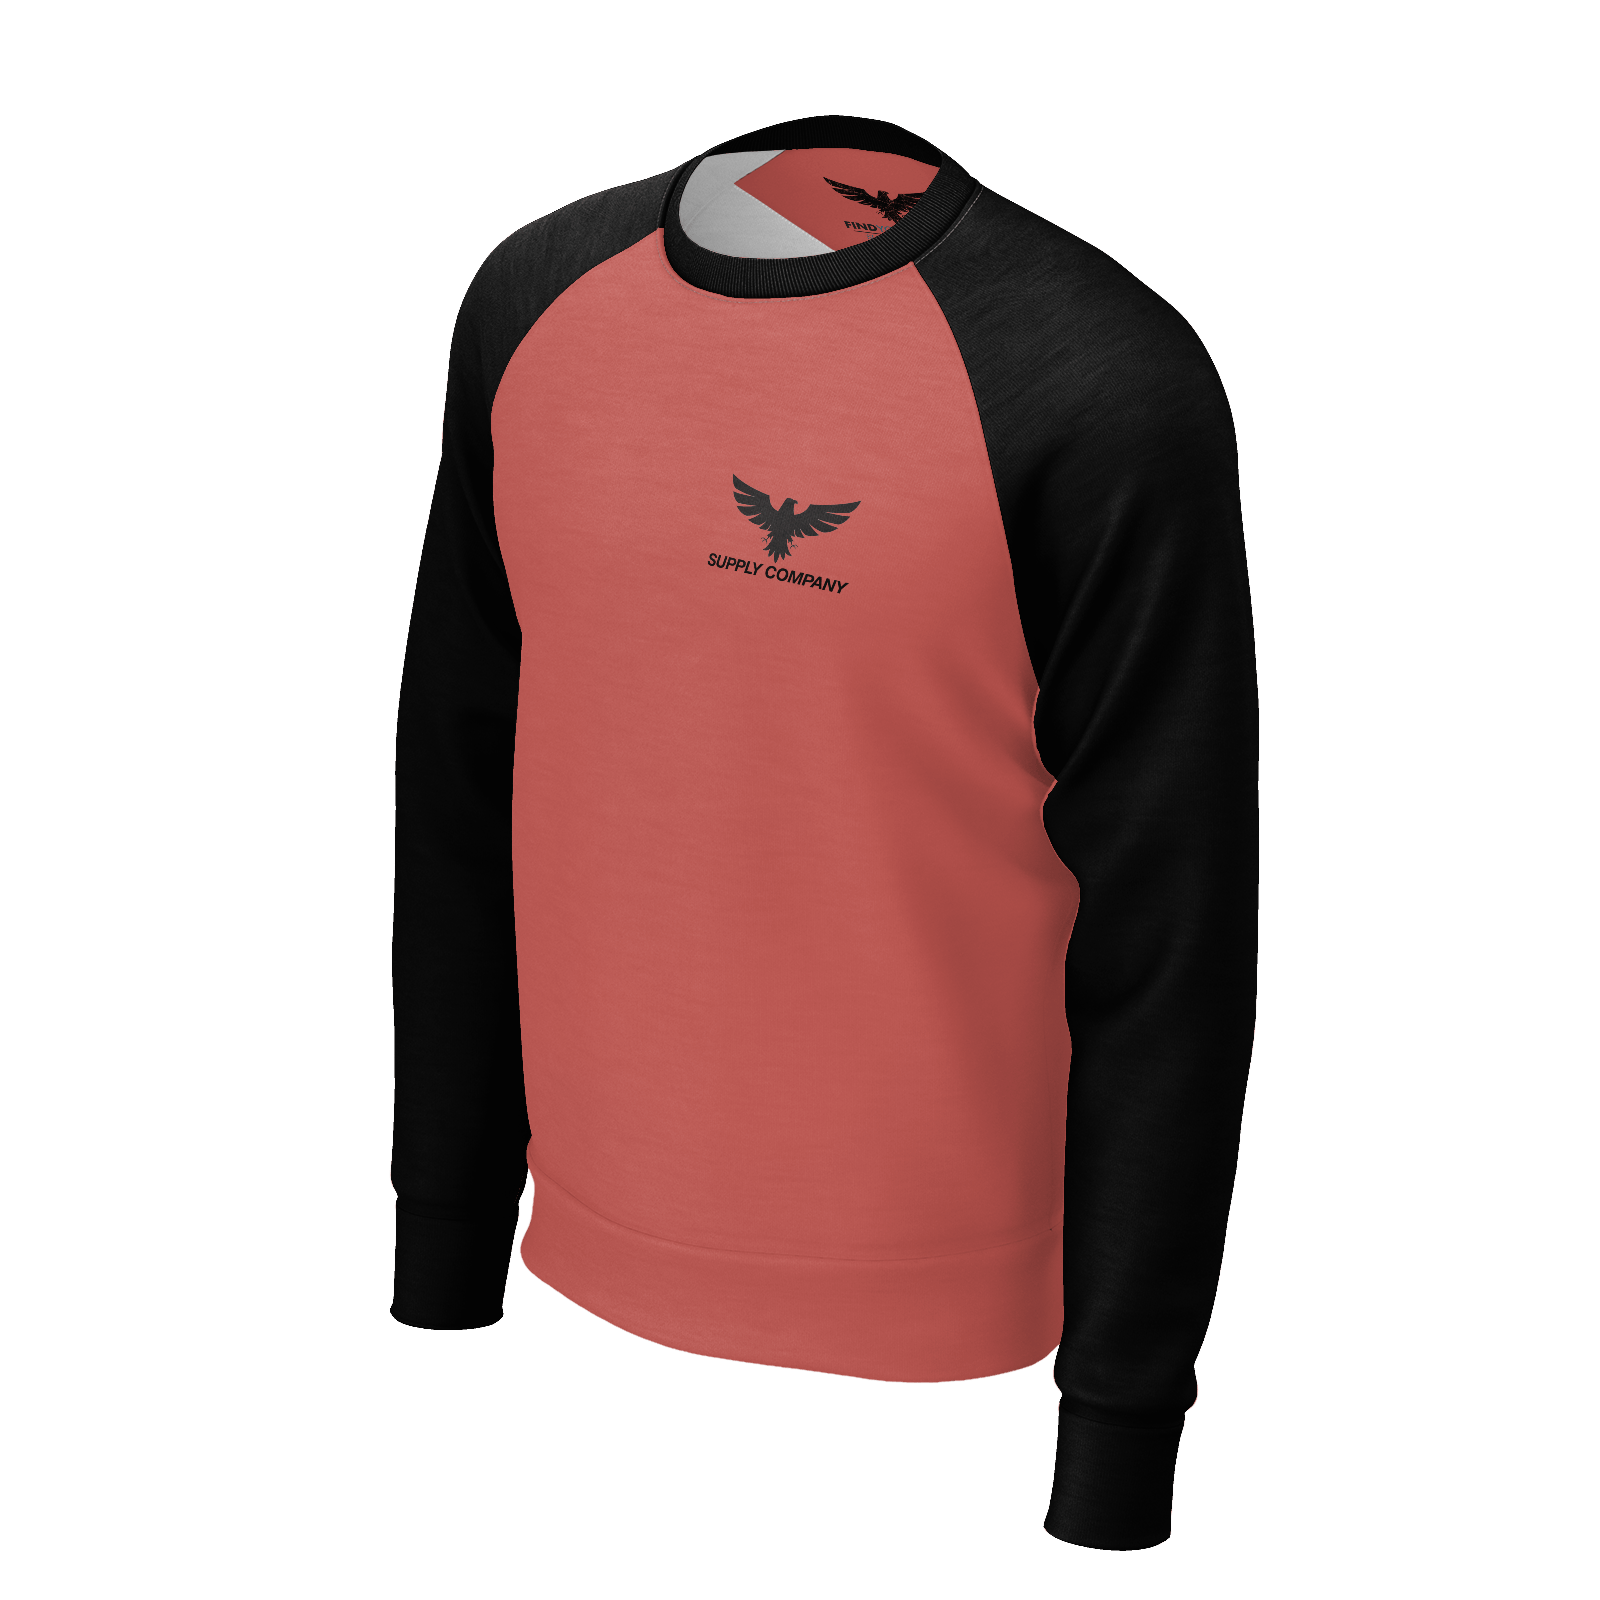 Men's Rise and Go Sustainable Raglan Crewneck Sweatshirt - Find Your Coast Supply Co.